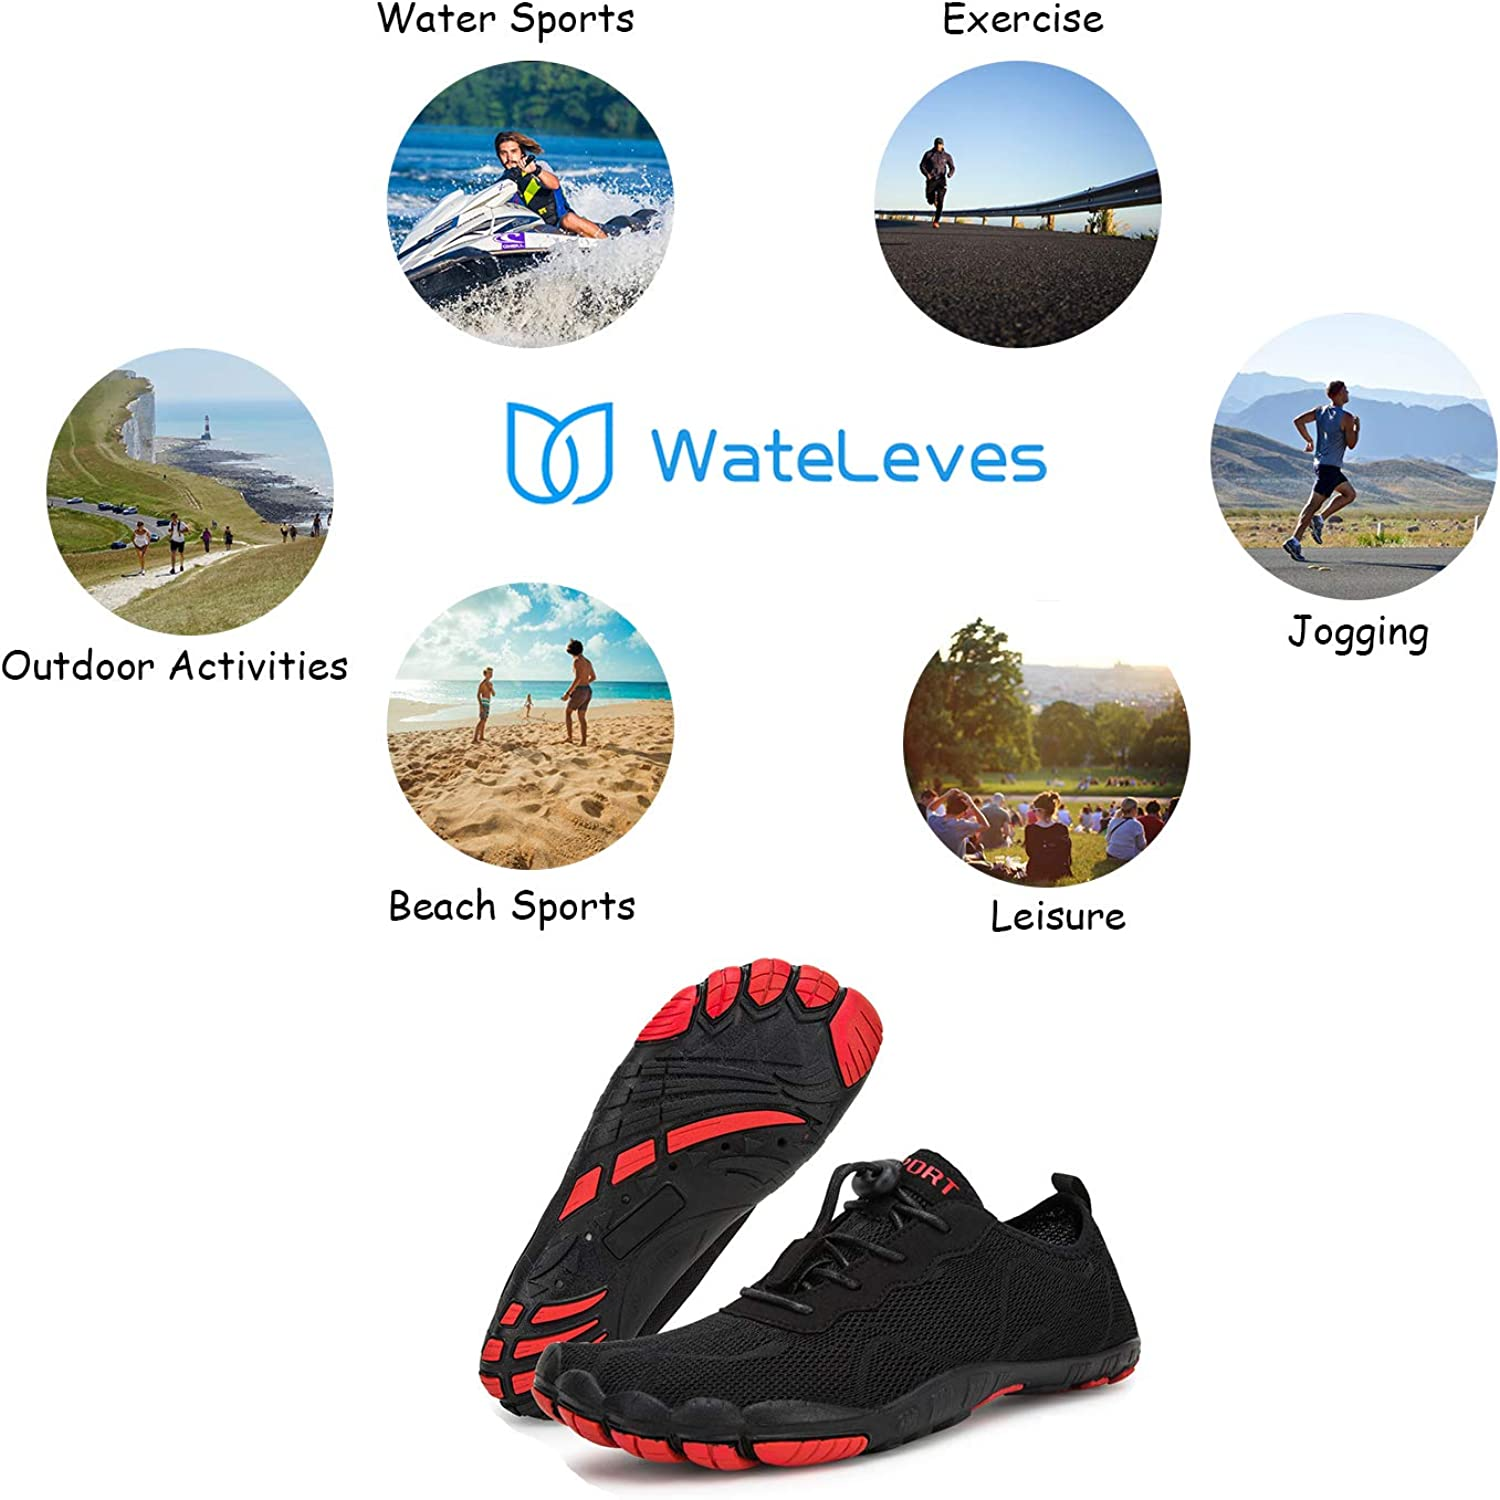 | Water Shoes for Men and Women Barefoot Quick-Dry Aqua Sock Outdoor Athletic Sport Shoes for Kayaking, Boating, Hiking, Surfing, Walking | Water Shoes